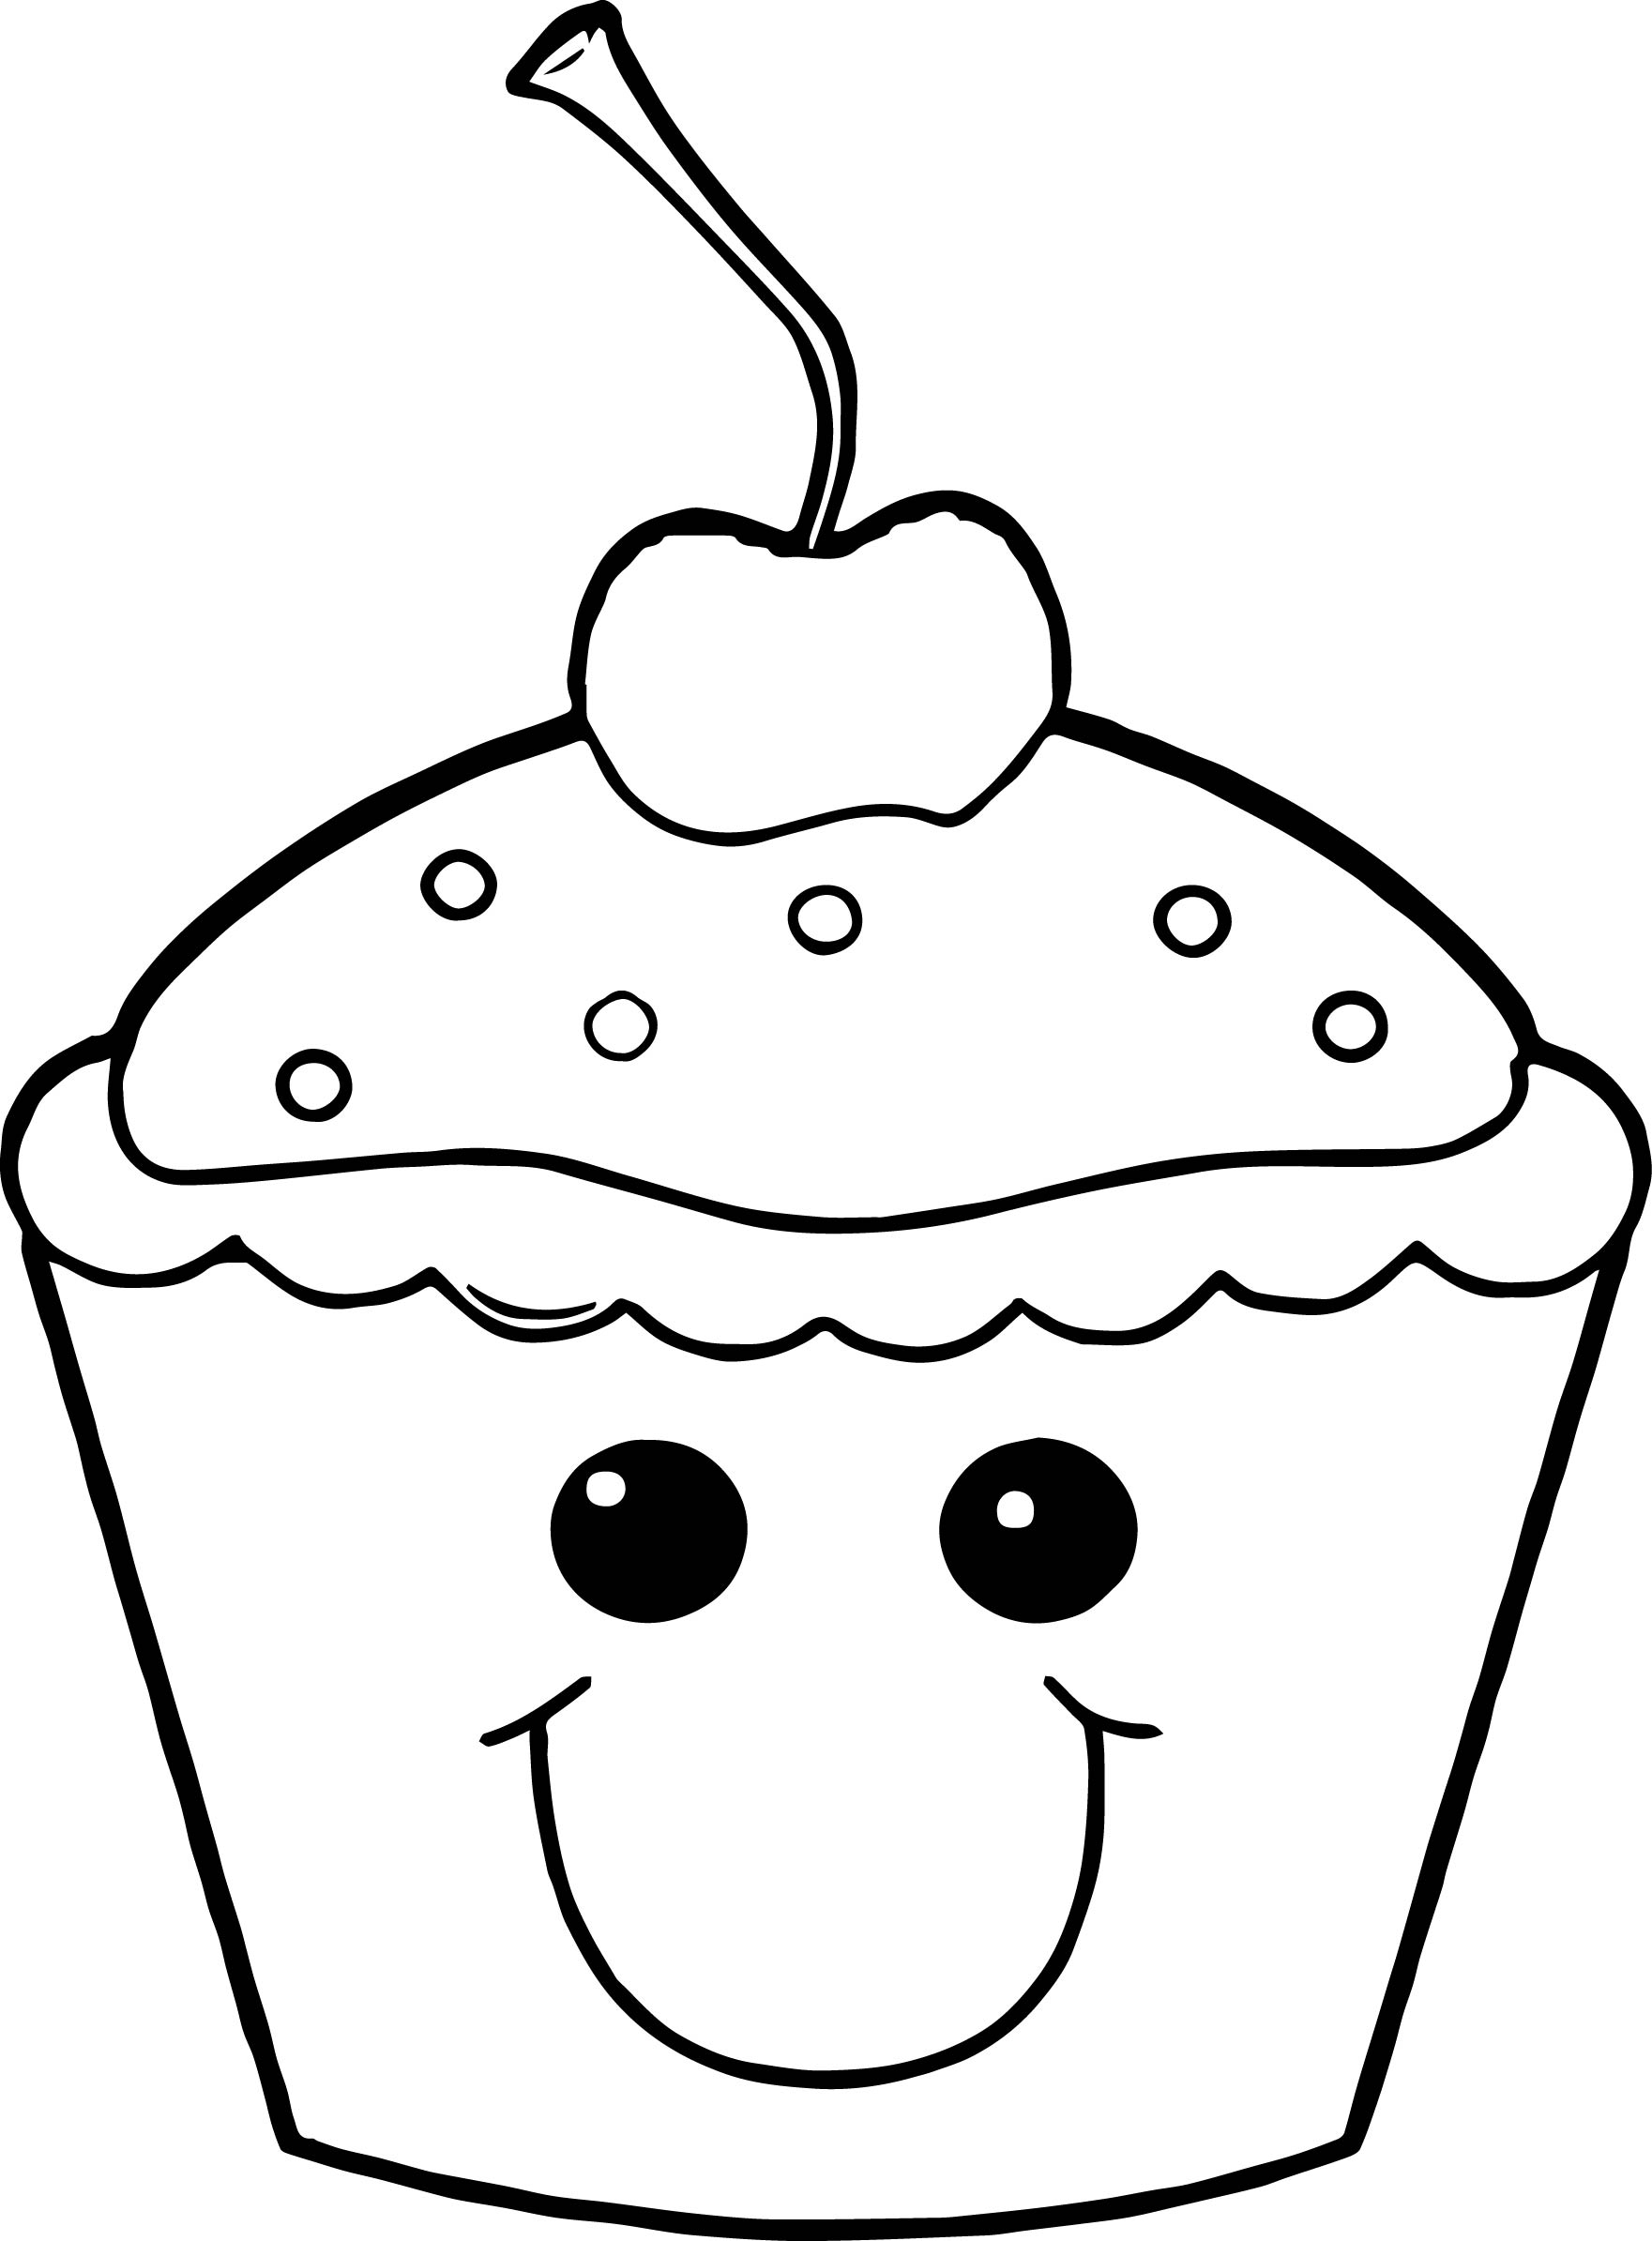 Cupcake Drawing Easy At Getdrawings Com Free For Personal Use